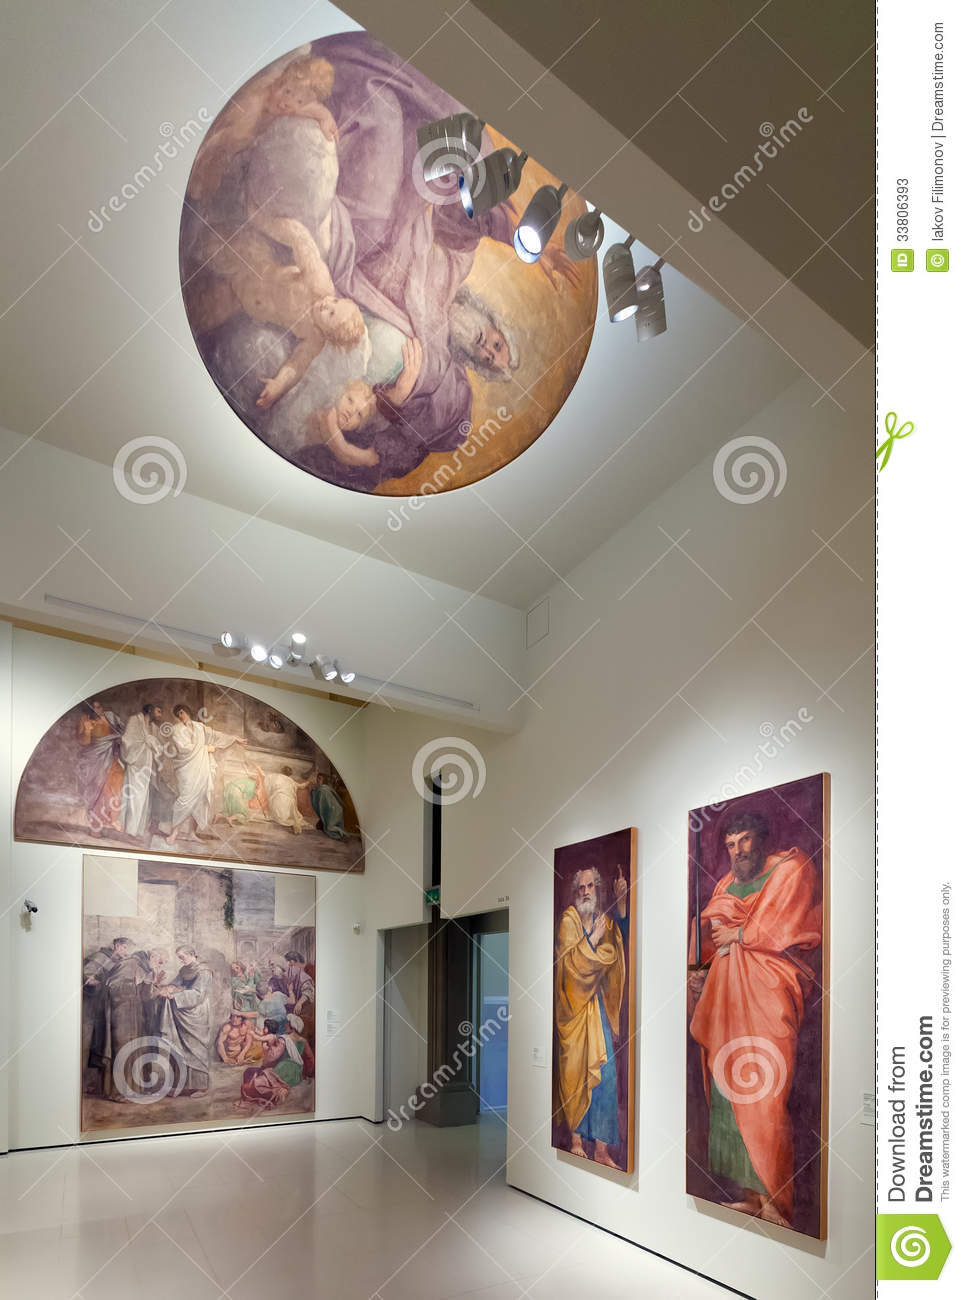 Religious Paintings In The Medieval Art Hall Editorial Stock Photo  Image 33806393